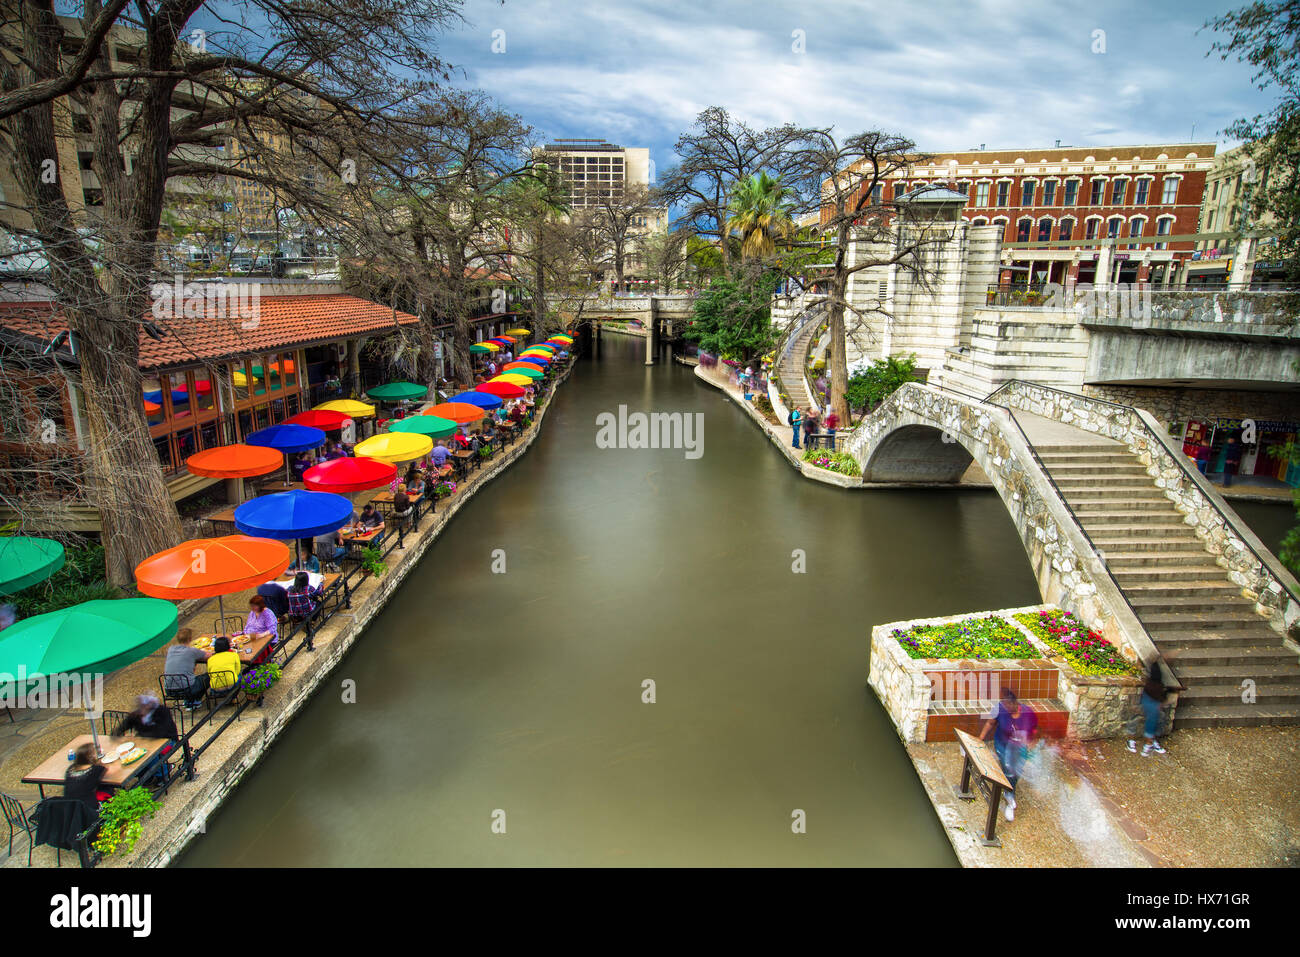 Part Of The San Antonio Riverwalk With Buildings And